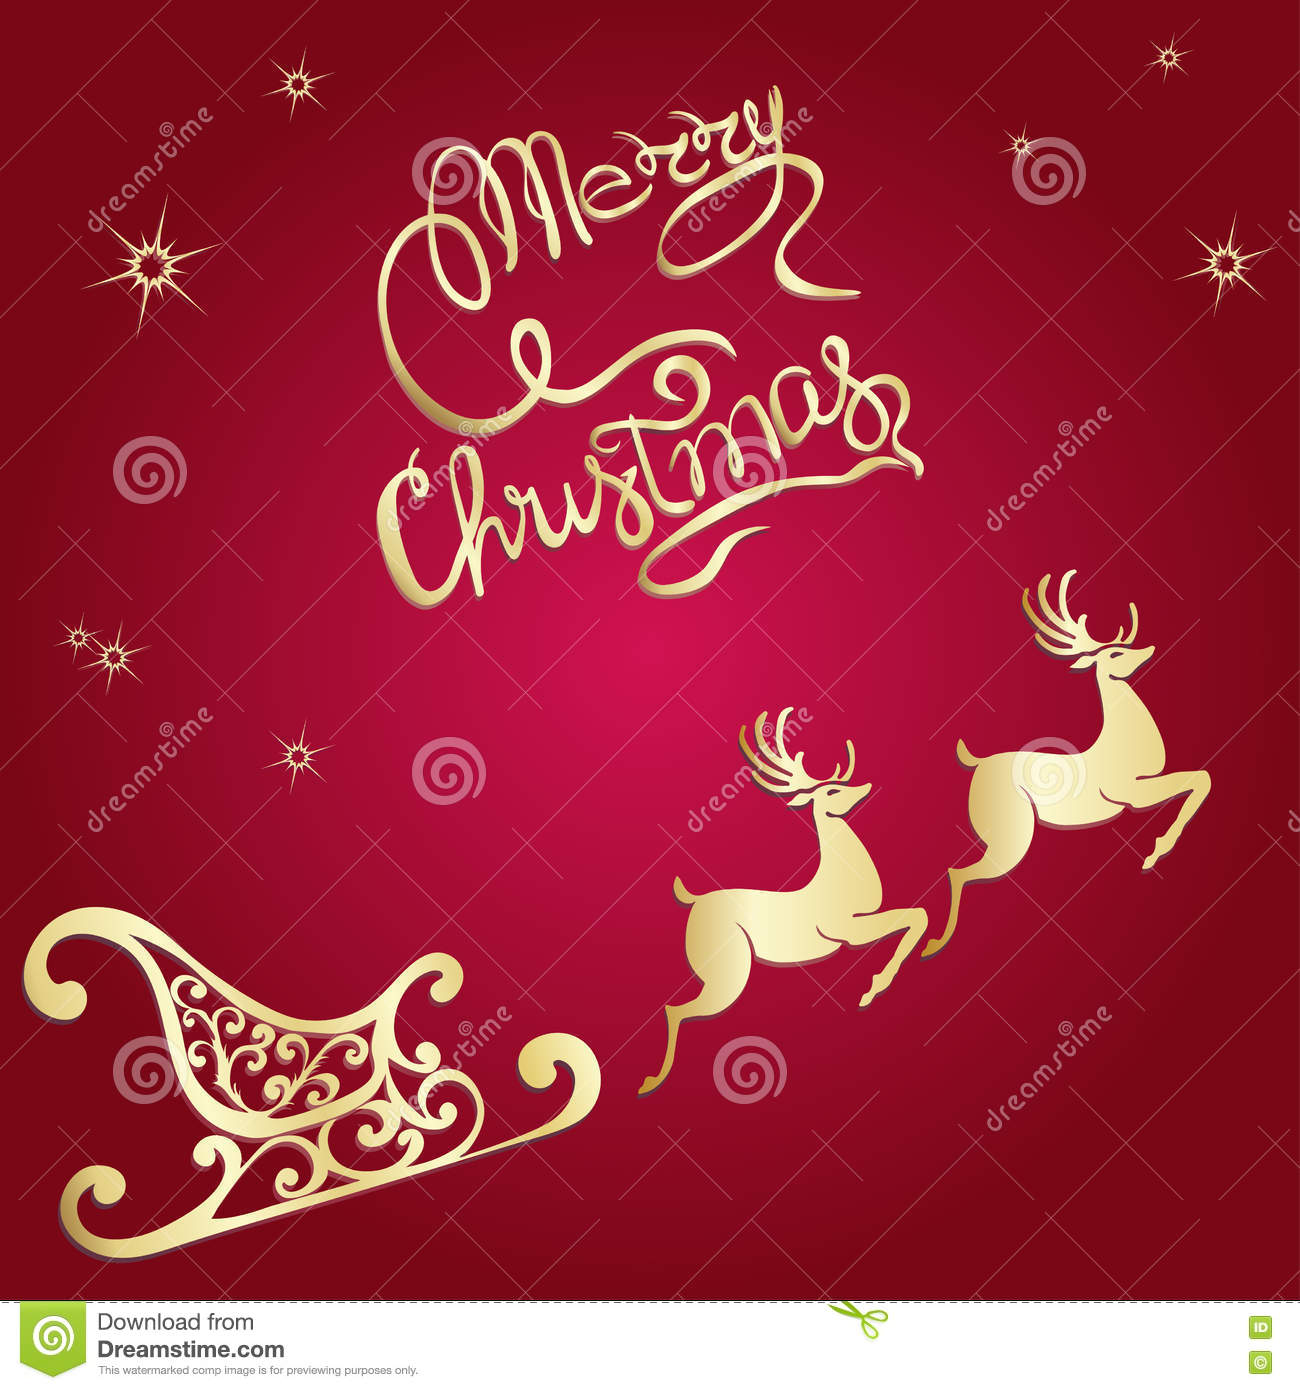 Deer Merry Christmas Poster Template Stock Vector - Illustration of ...